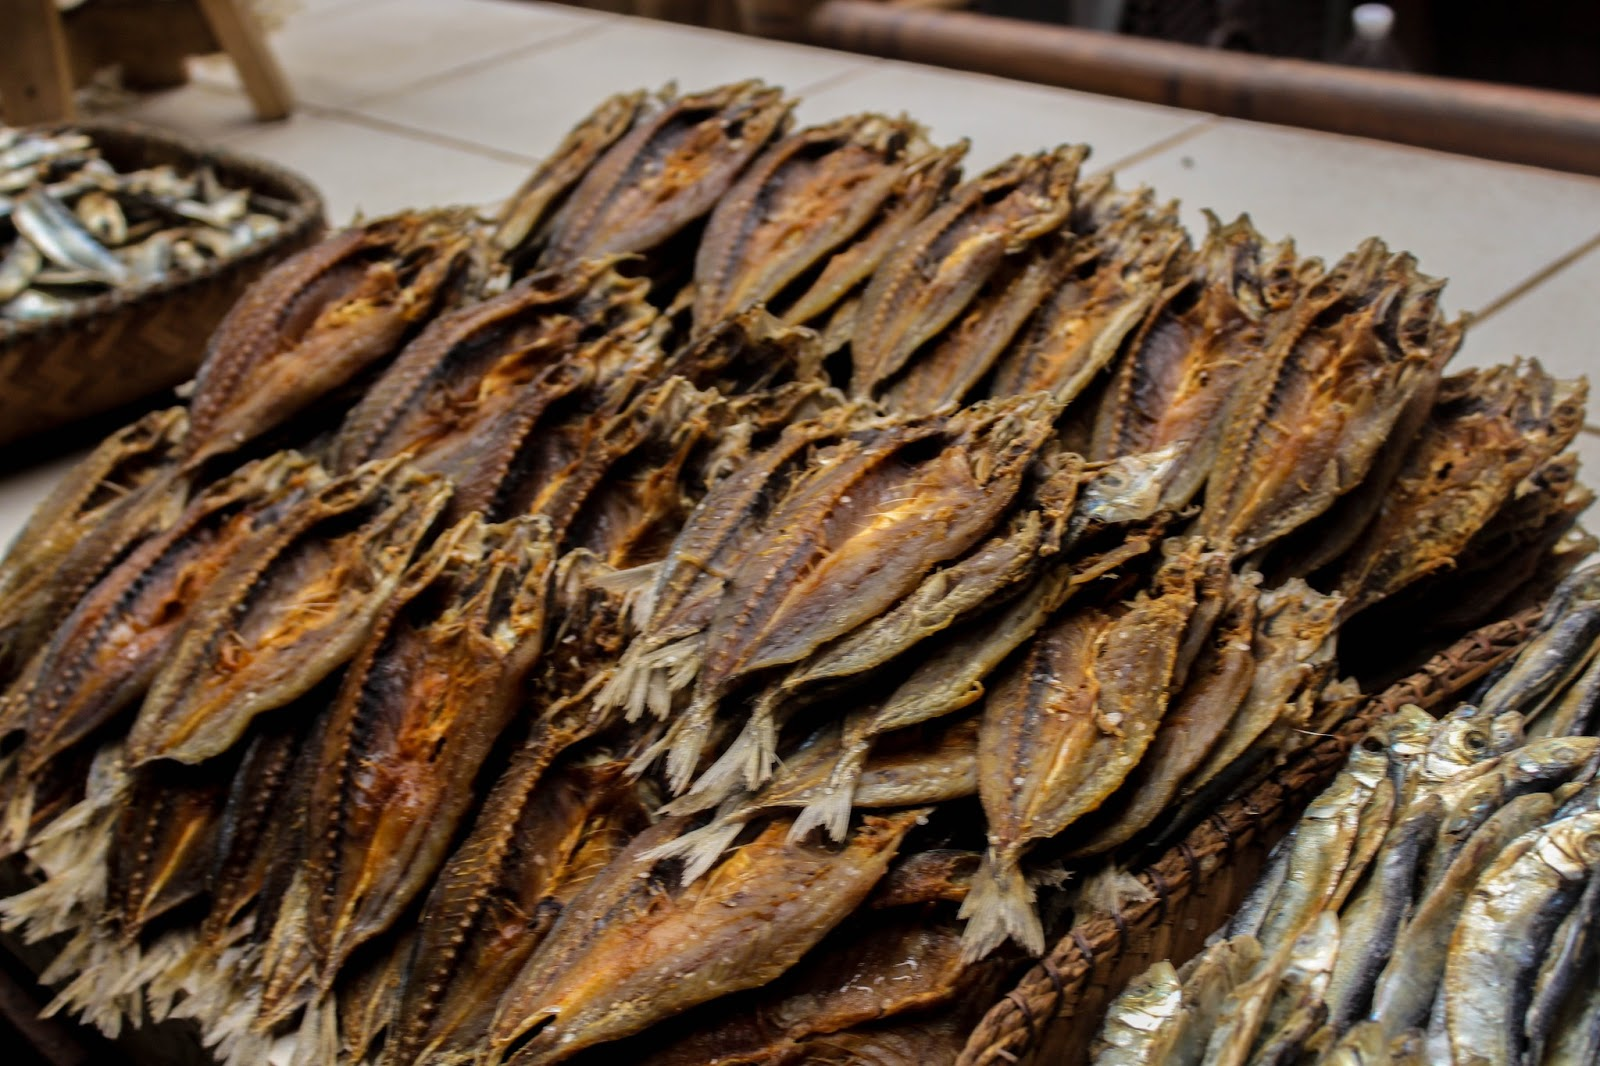 Baron the explorer estancia iloilo center of commerce for Dried fish philippines